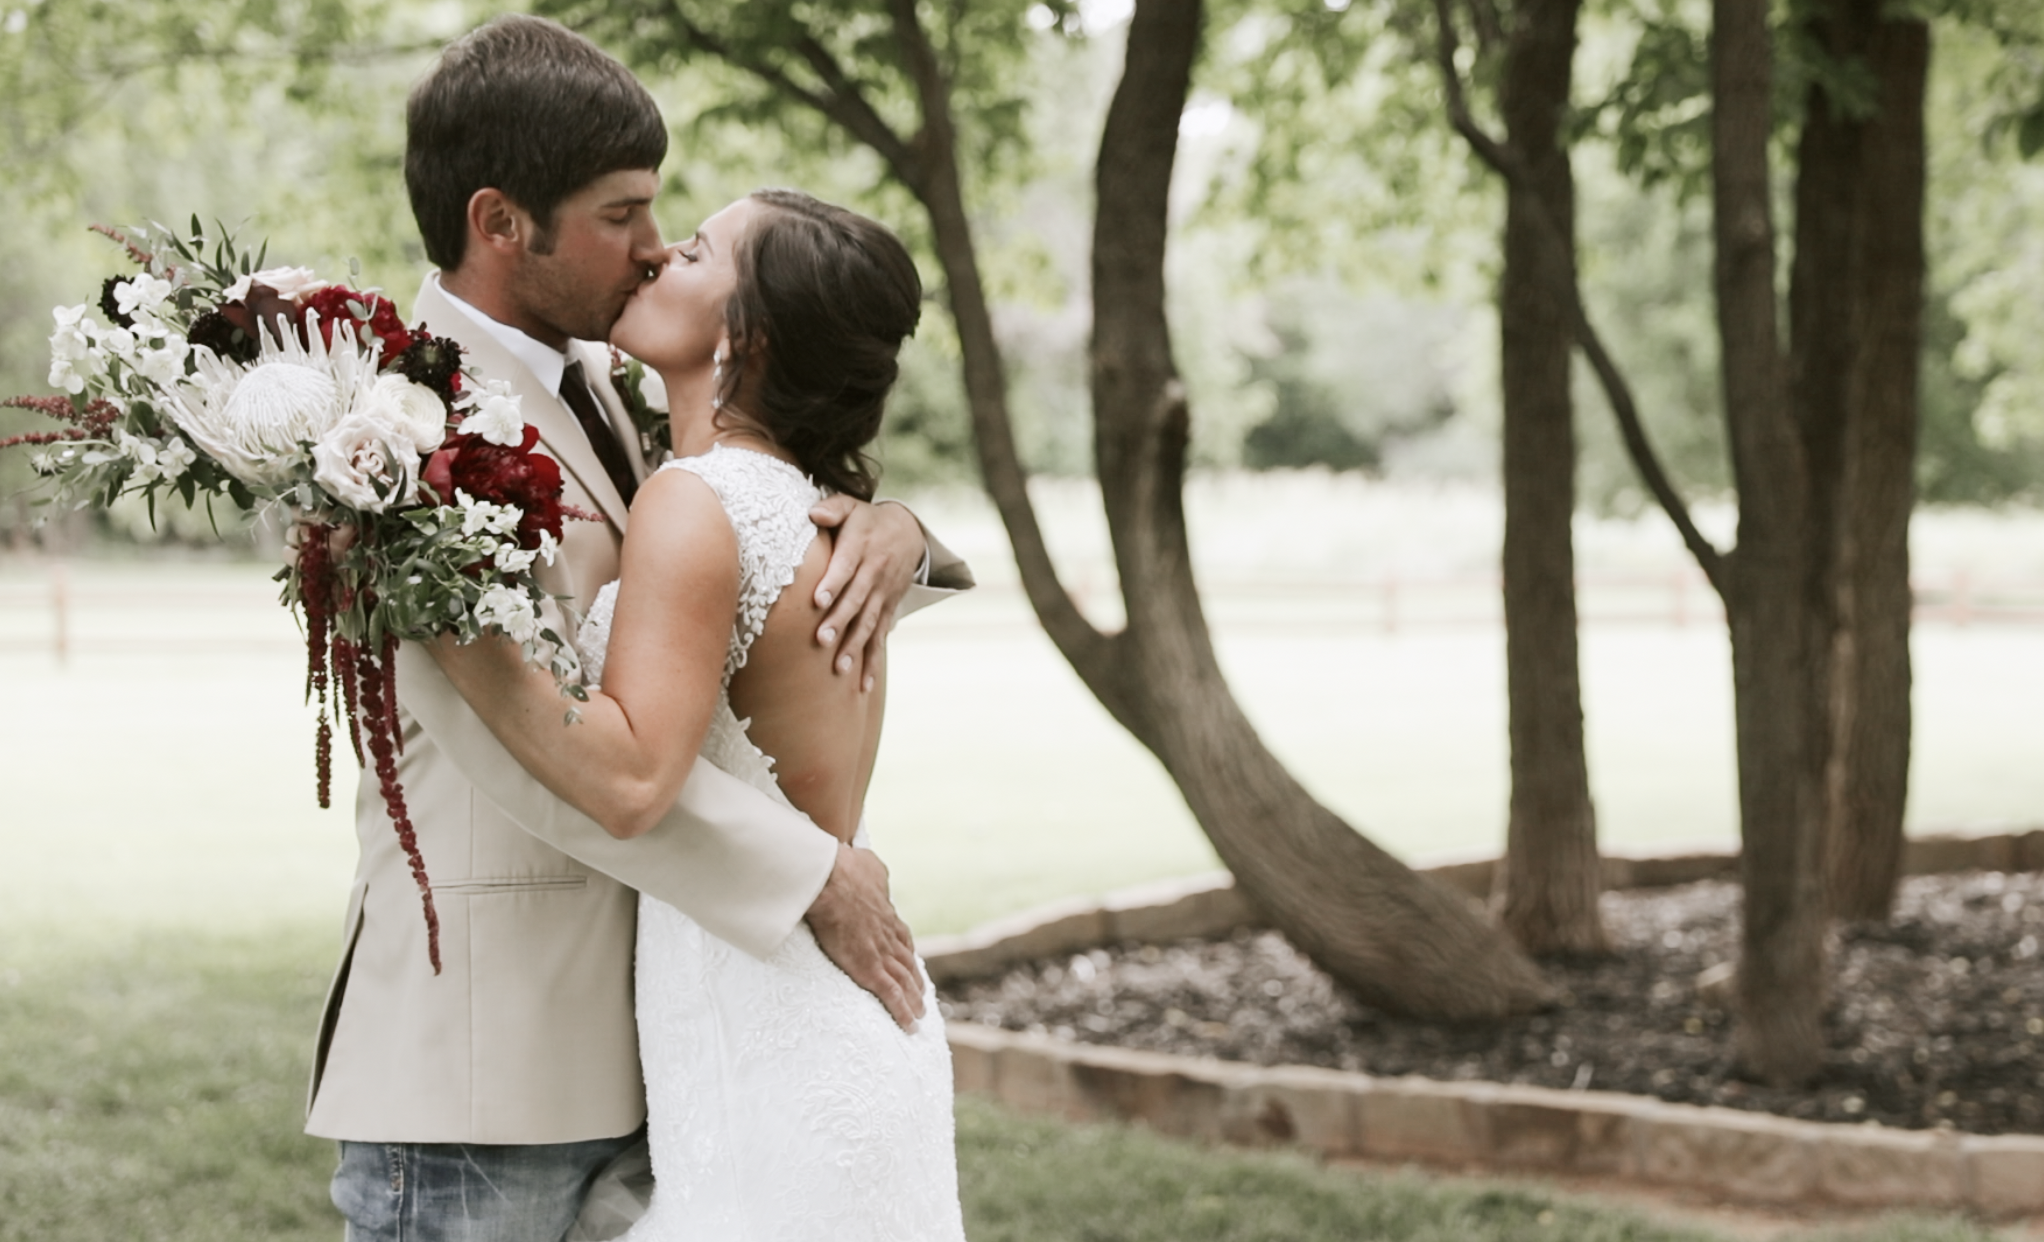 Danielle + Slade | Edmond, Oklahoma | The Springs Edmond